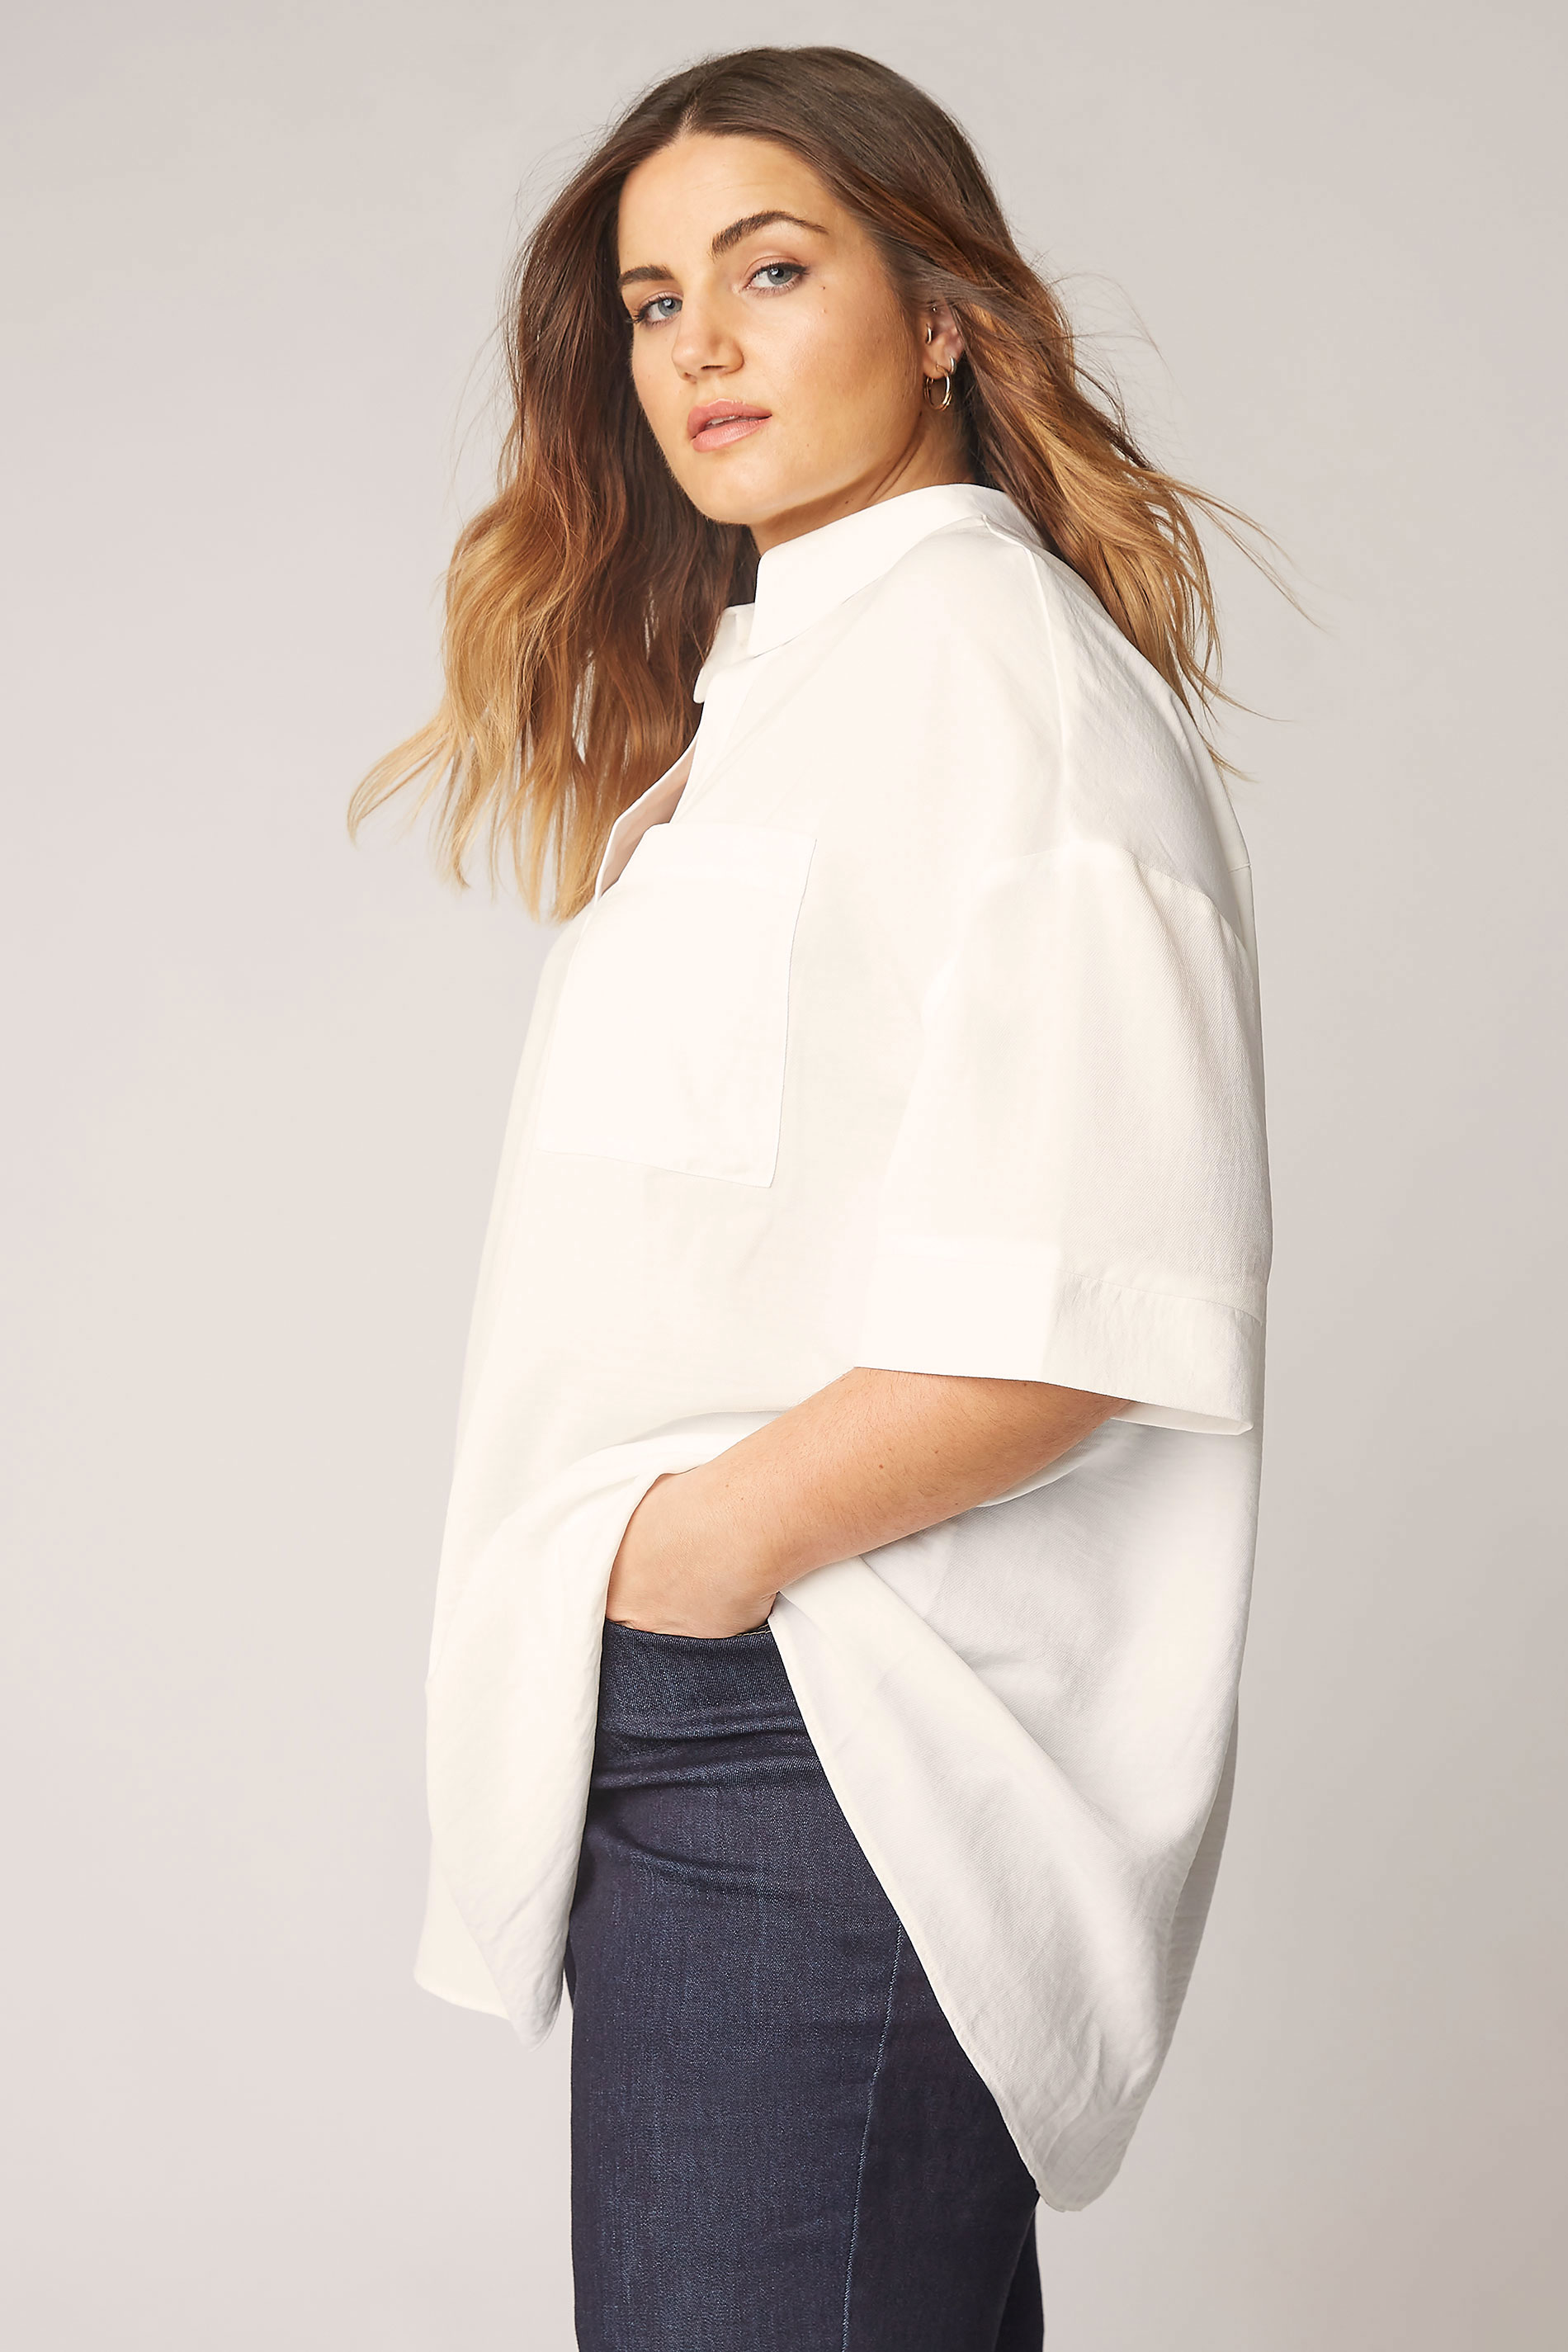 THE LIMITED EDIT White Pleated Front Top_B.jpg